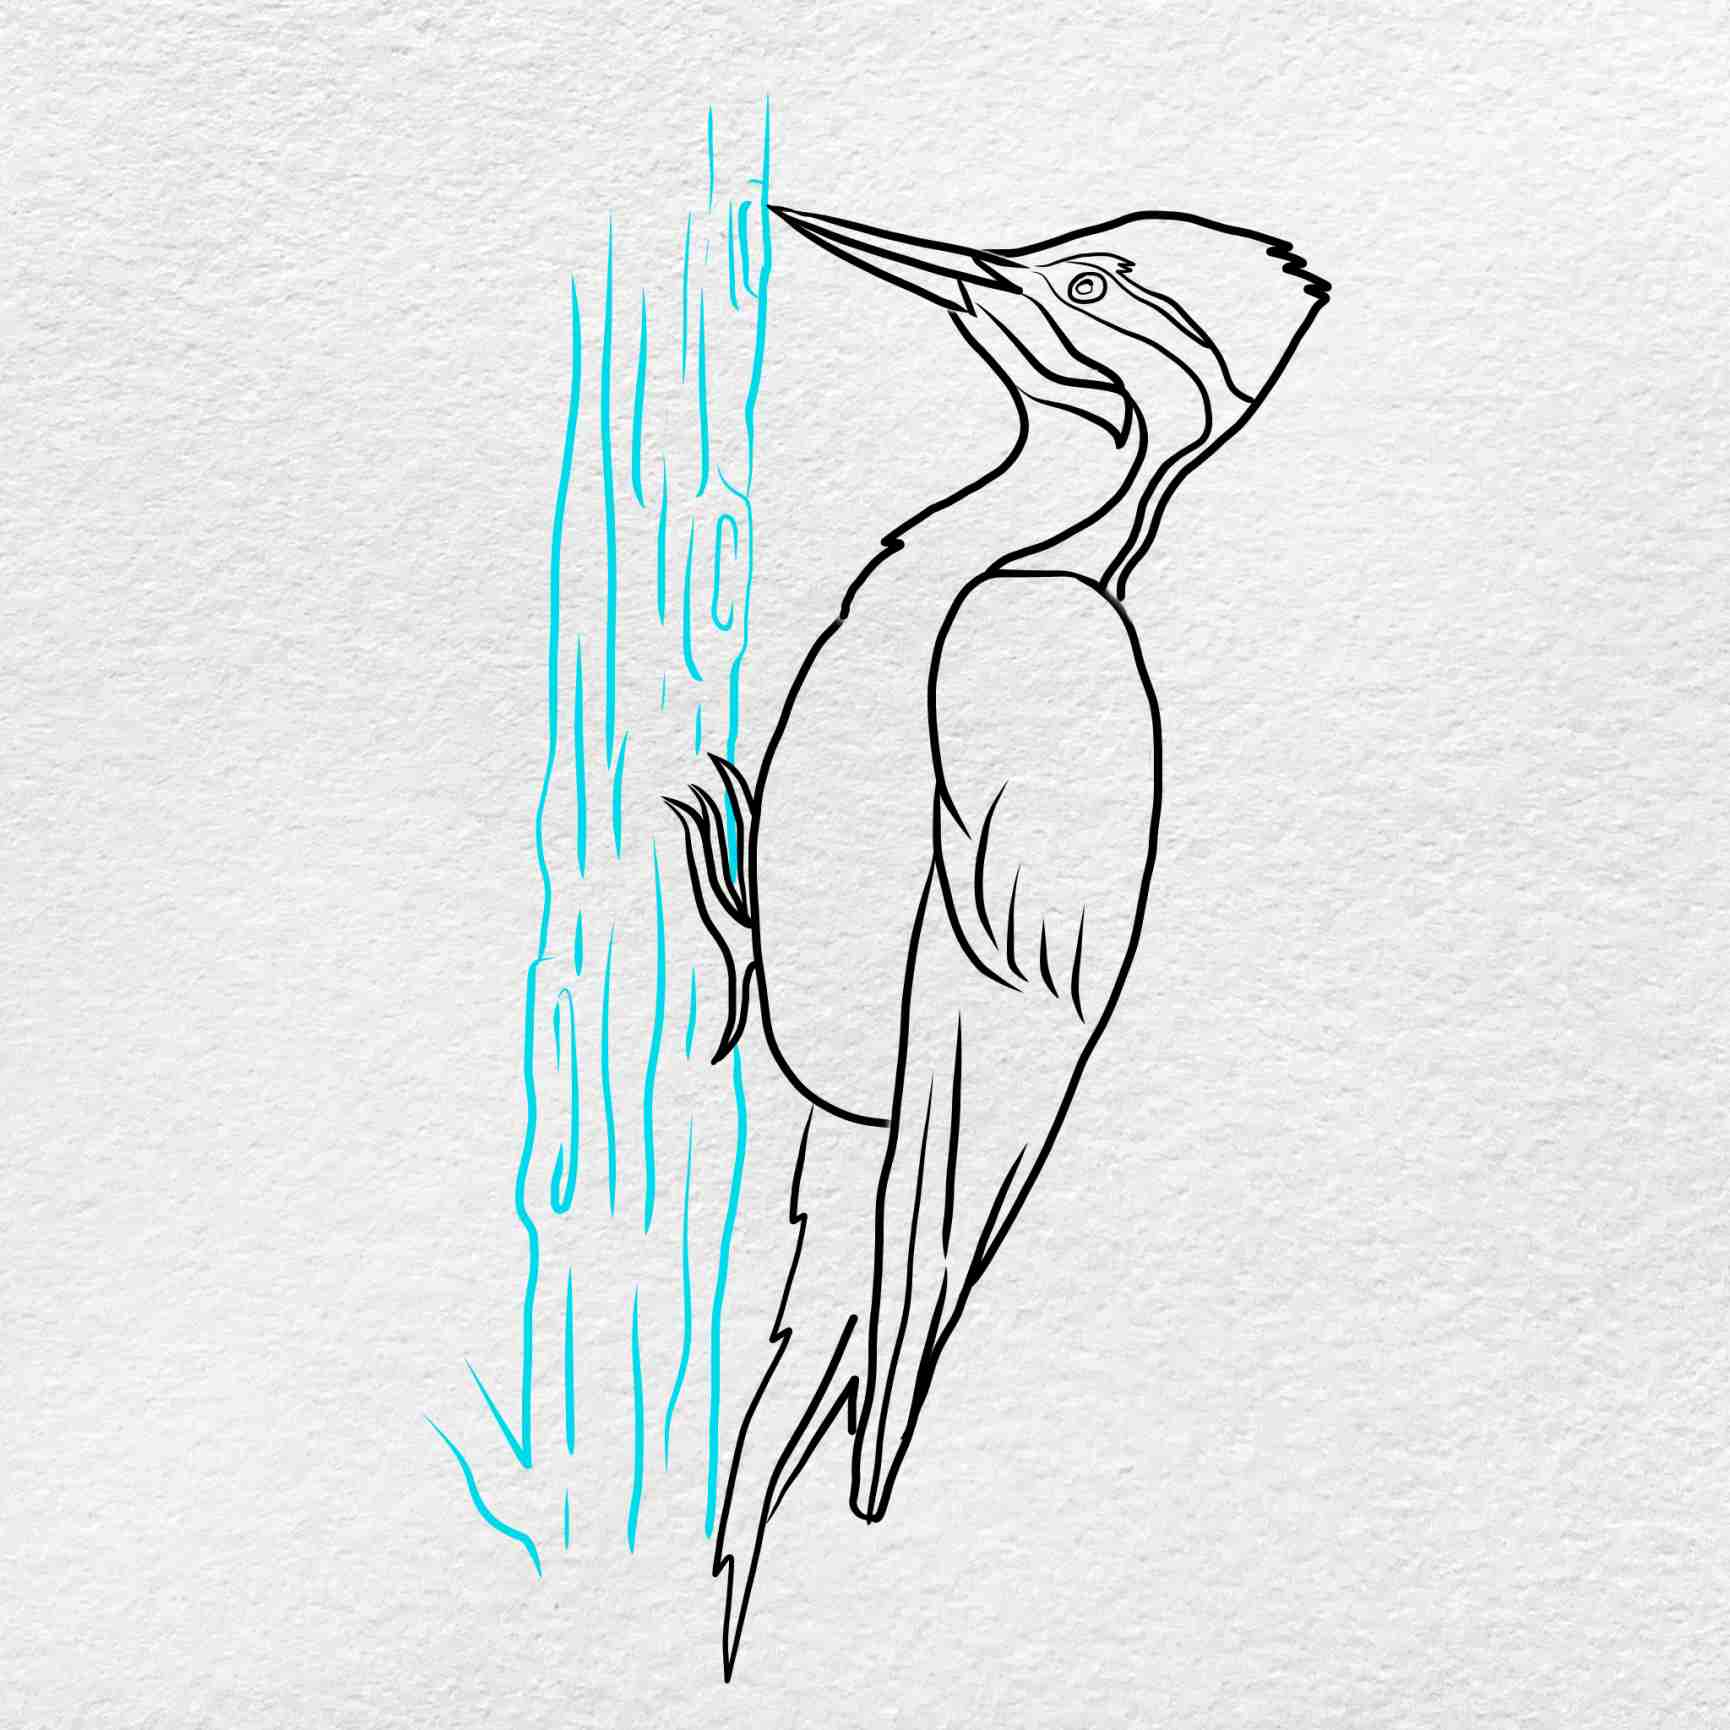 How To Draw A Woodpecker: Step 8